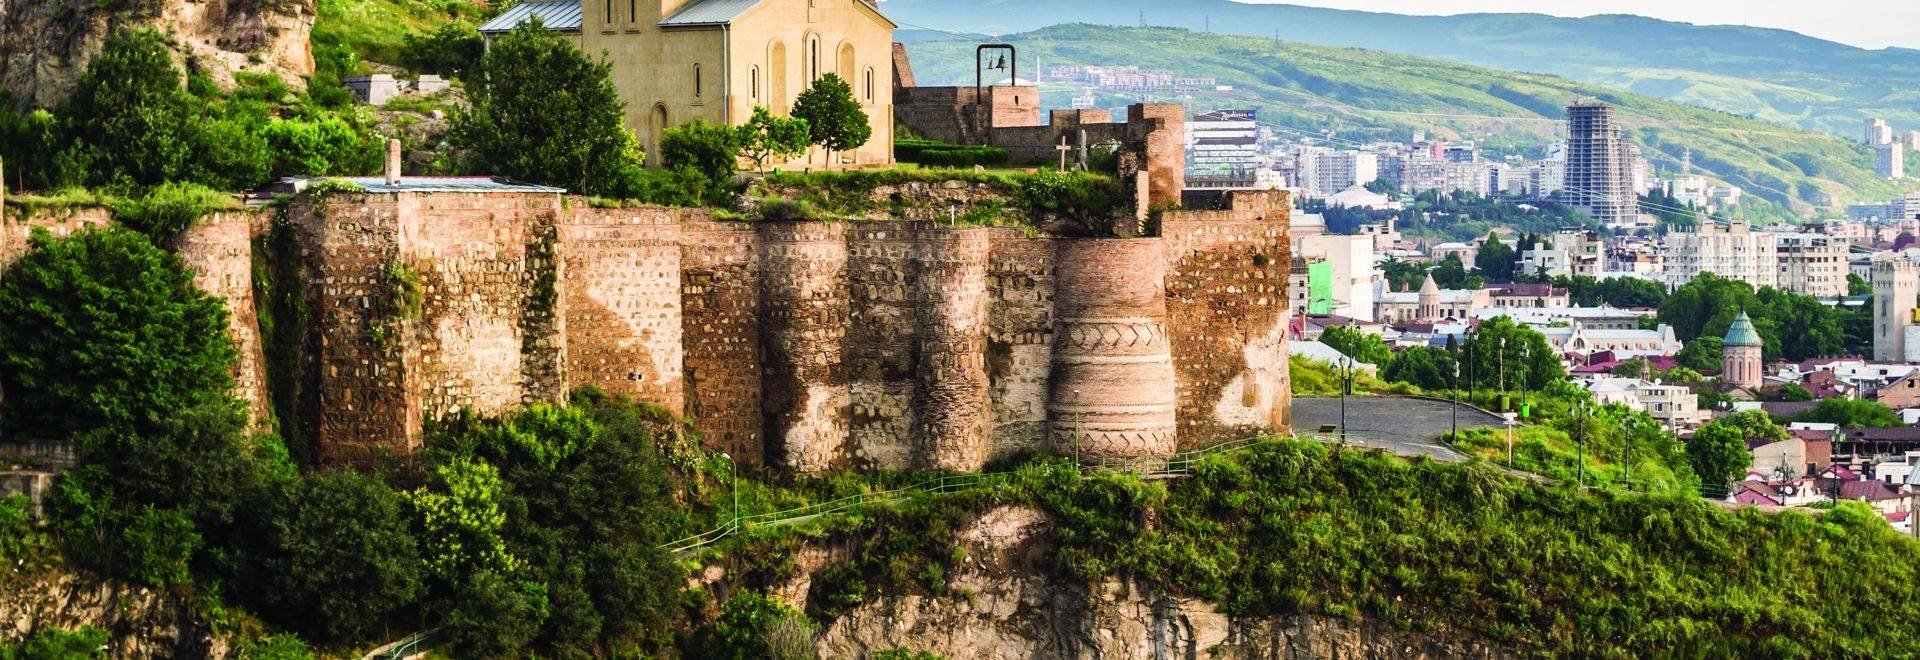 Horizontal Photo Of The Narikala Fortress With The St Nikolas Church And The Architecture In The Surrounding Old Town Of Tbi…